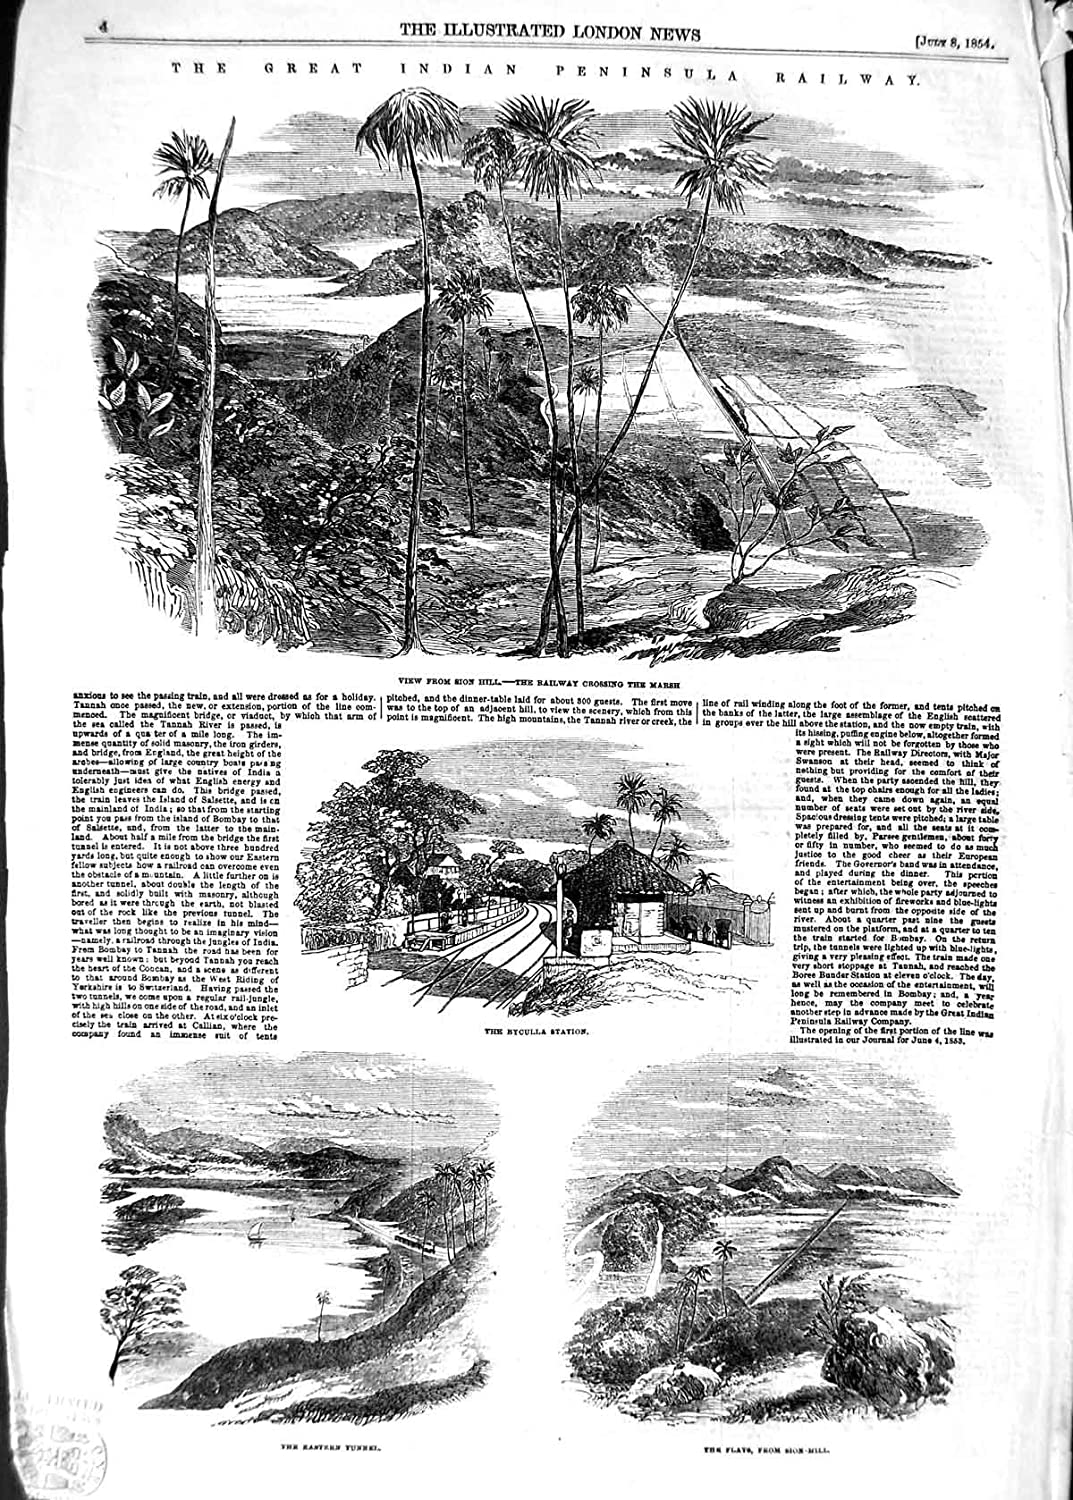 Antique Print 1854 Sion Hill Railwau Indian Railway Byculla Station  004P125: Amazon.co.uk: Kitchen & Home